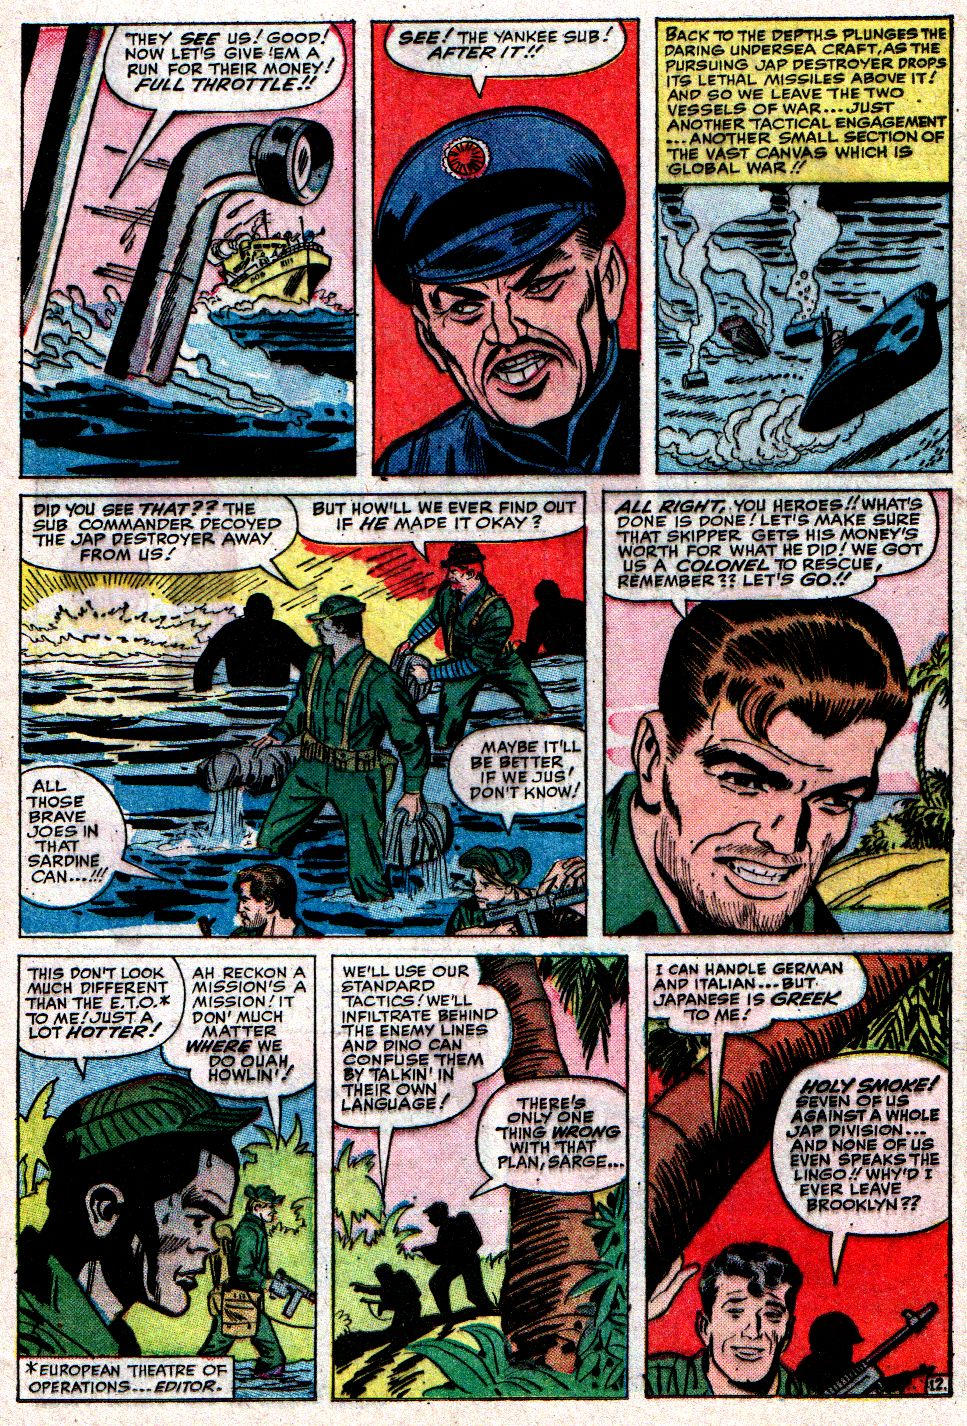 Read online Sgt. Fury comic -  Issue #10 - 17